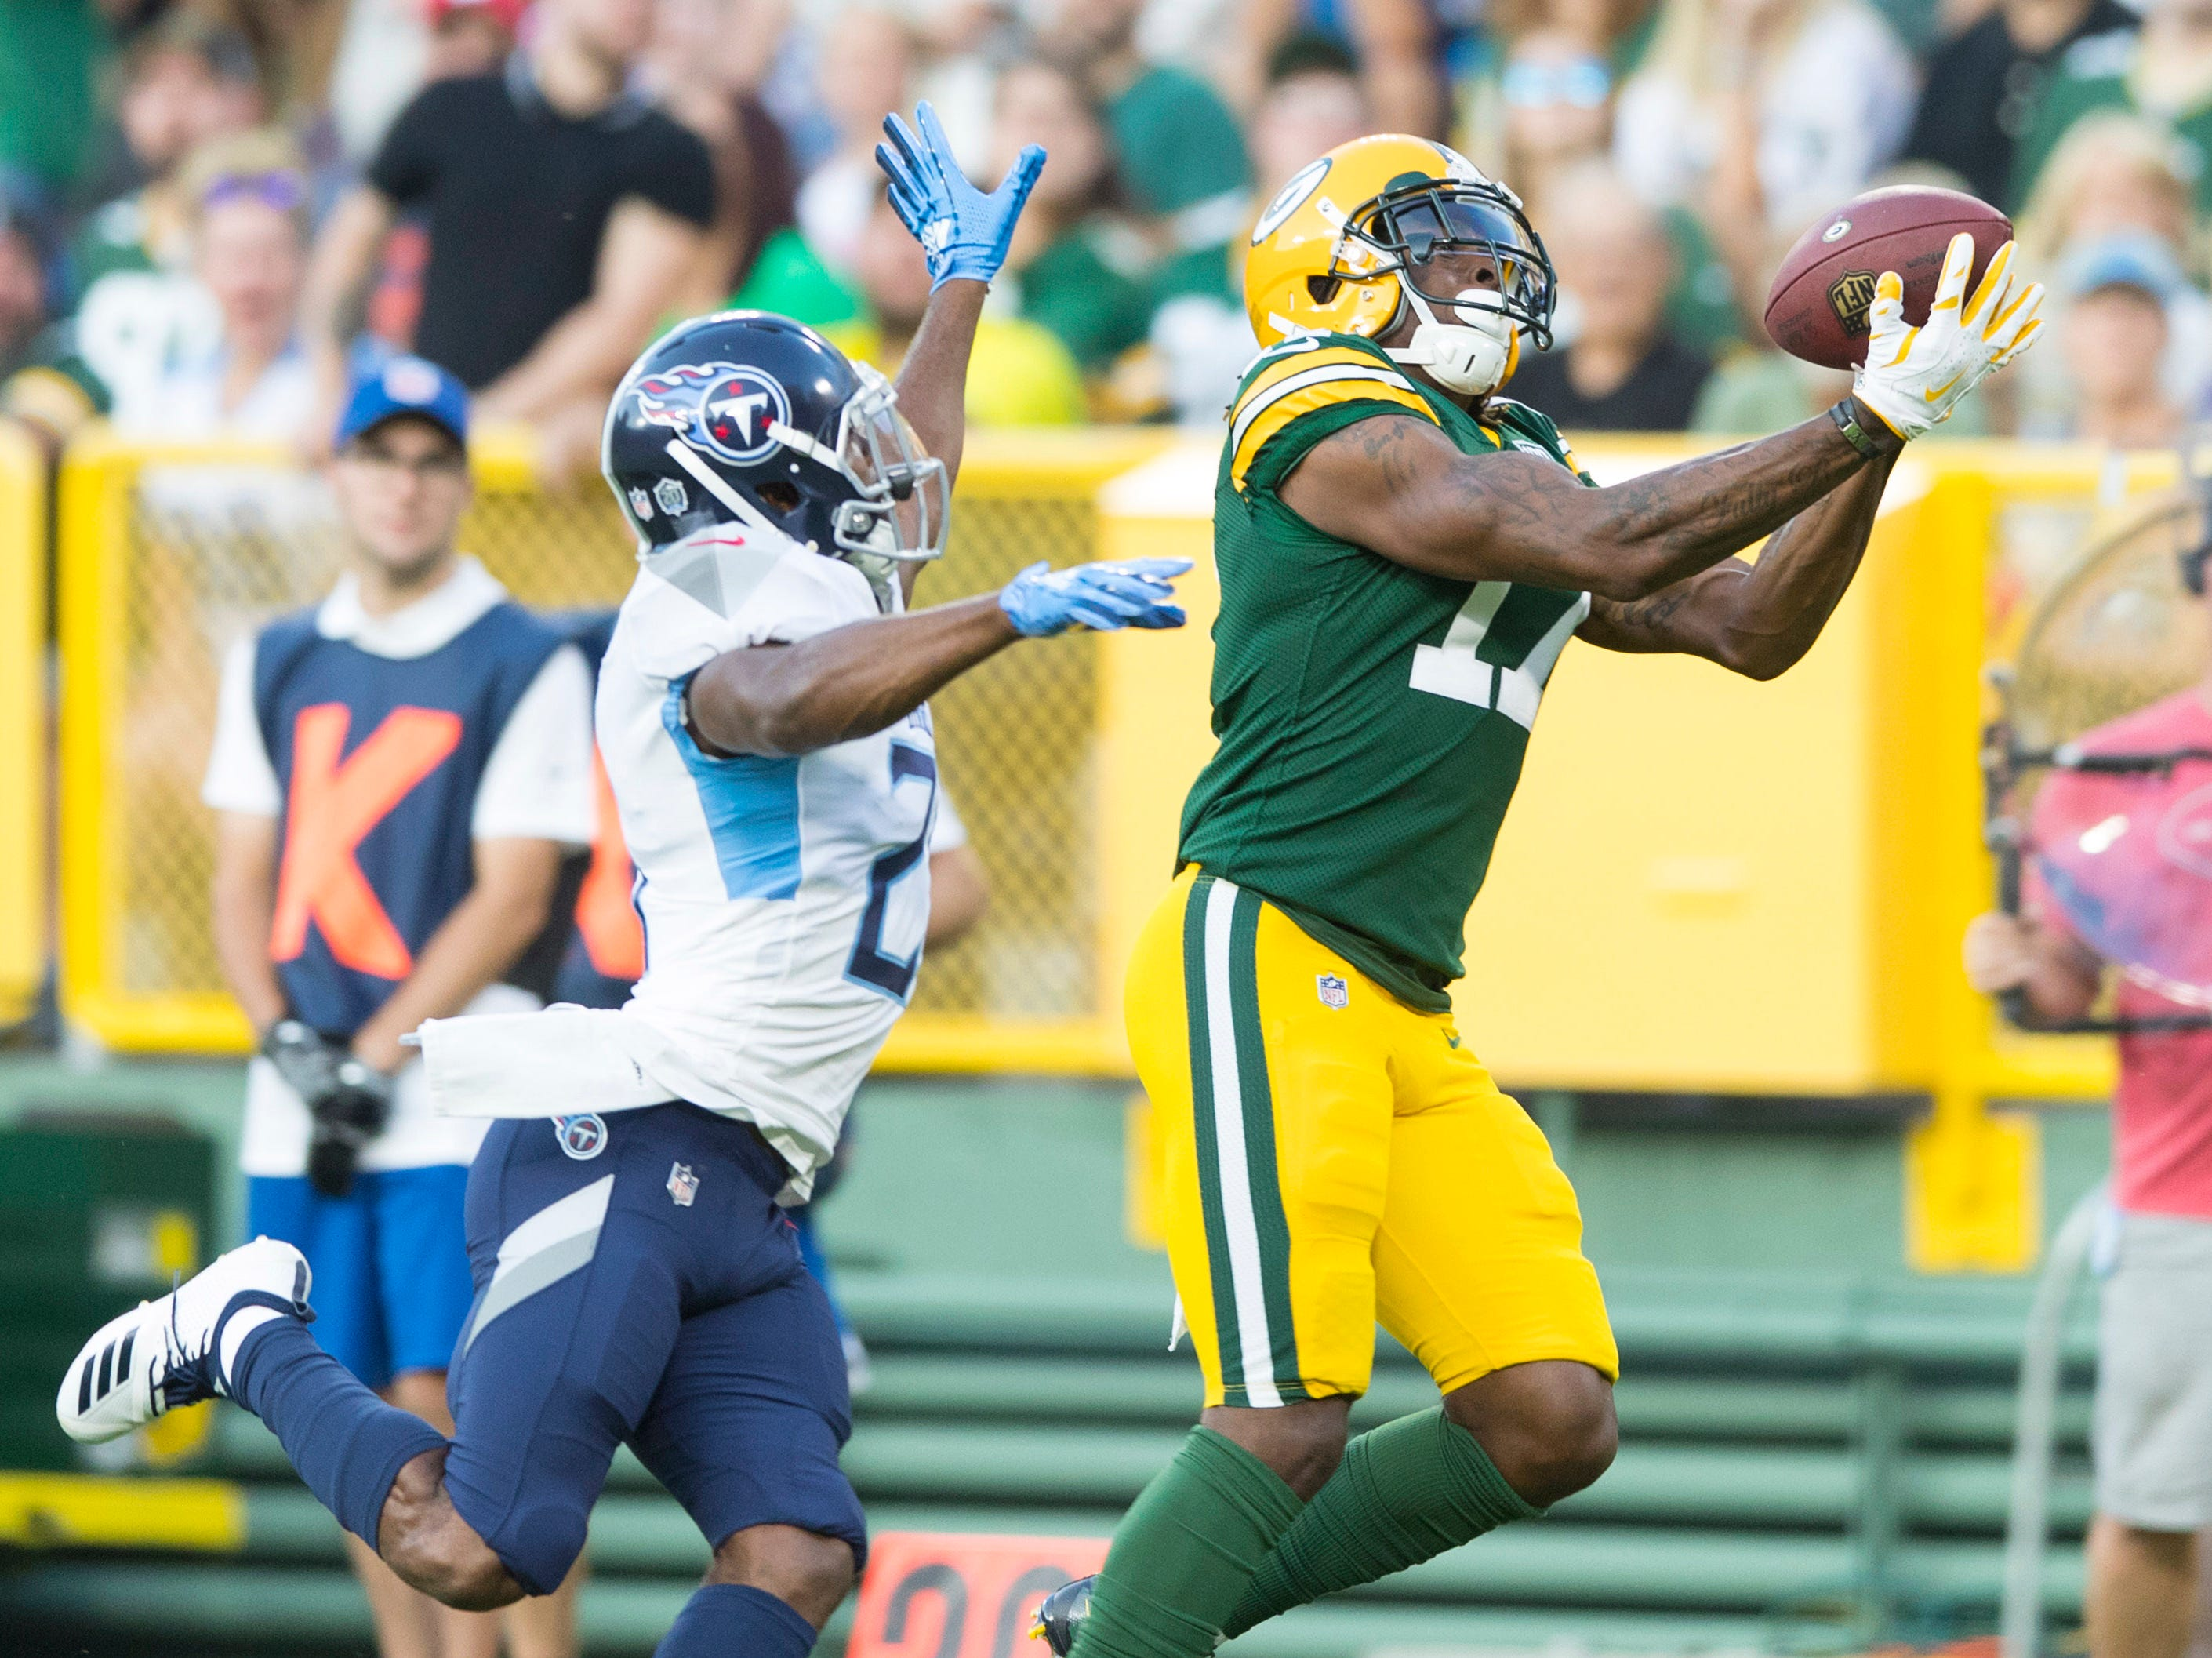 Aug 9, 2018; Green Bay, WI, USA; Green Bay Packers wide receiver Davante Adams (17) catches a pass during the first quarter against the Tennessee Titans at Lambeau Field. Mandatory Credit: Jeff Hanisch-USA TODAY Sports